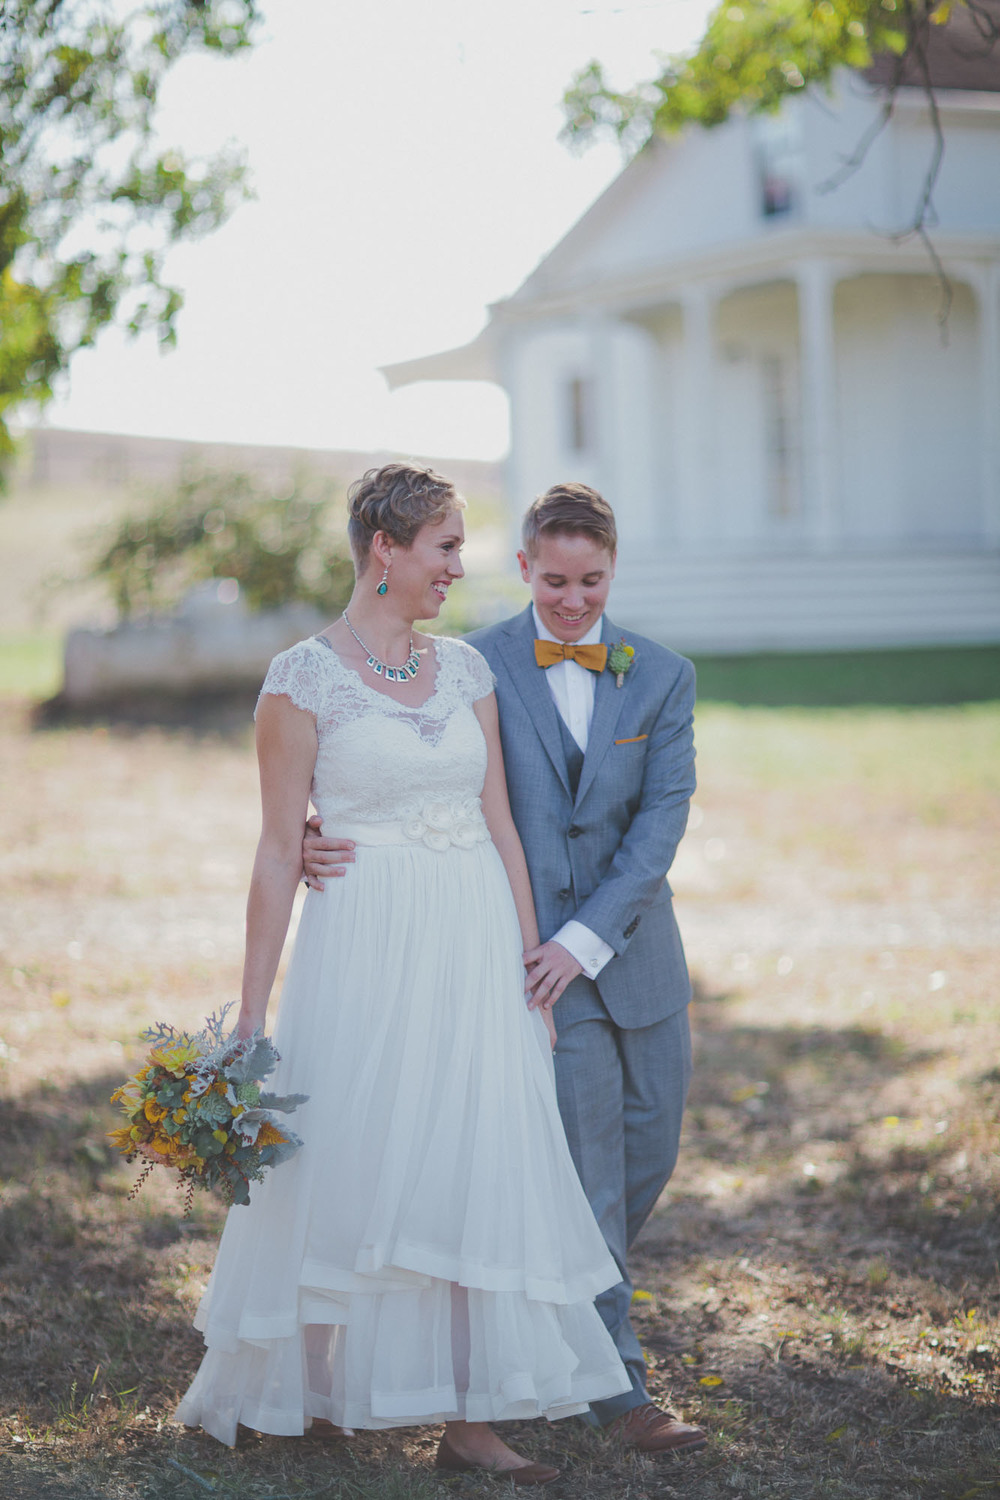 Gretchen_Gause_Petaluma_Olympias_Valley_Wedding_Photo-097.jpg